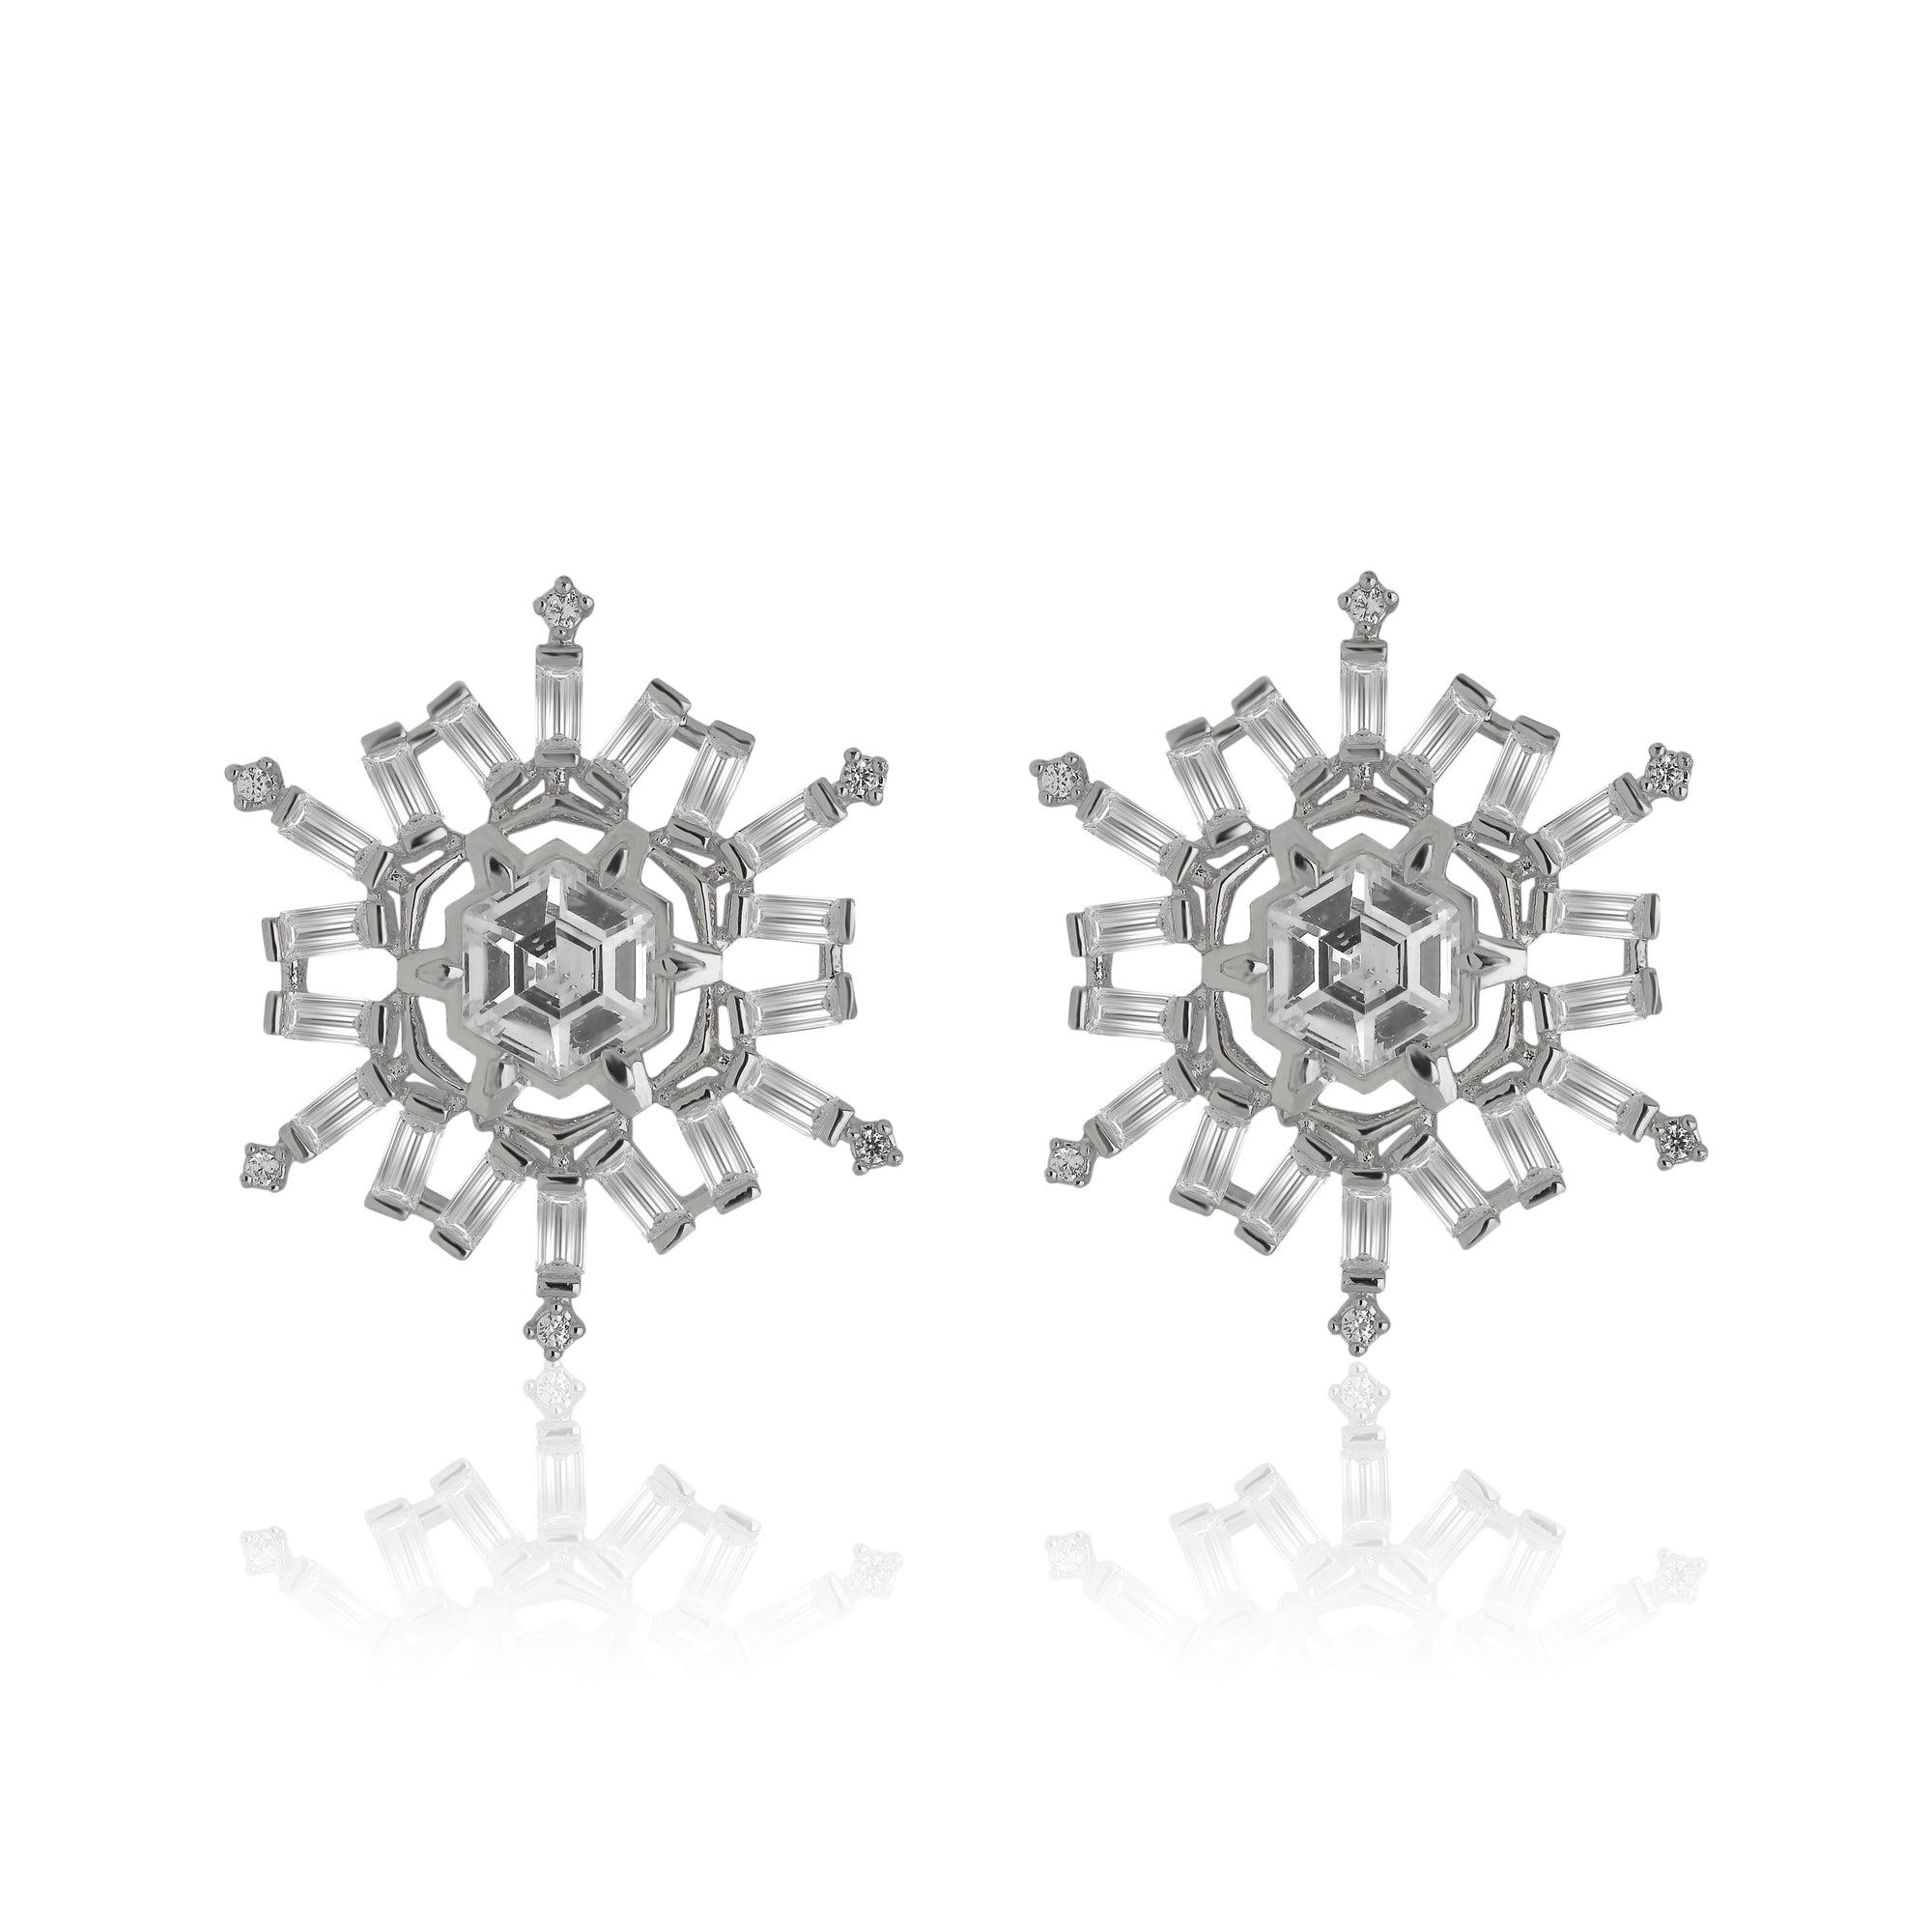 Snowburst Post Earrings